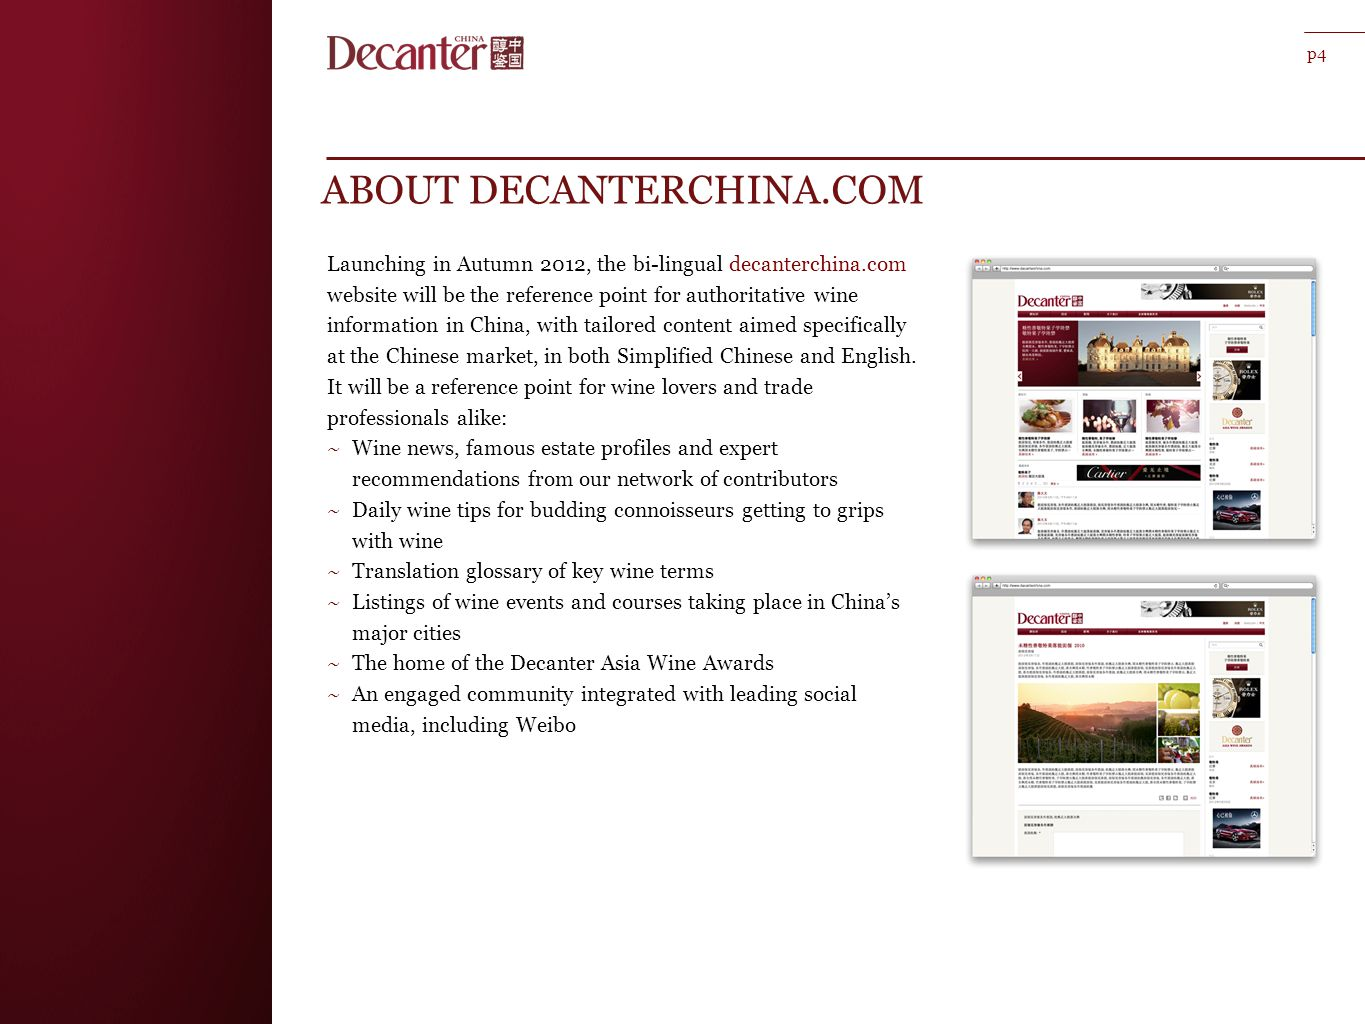 ABOUT DECANTERCHINA.COM Launching in Autumn 2012, the bi-lingual decanterchina.com website will be the reference point for authoritative wine information in China, with tailored content aimed specifically at the Chinese market, in both Simplified Chinese and English.